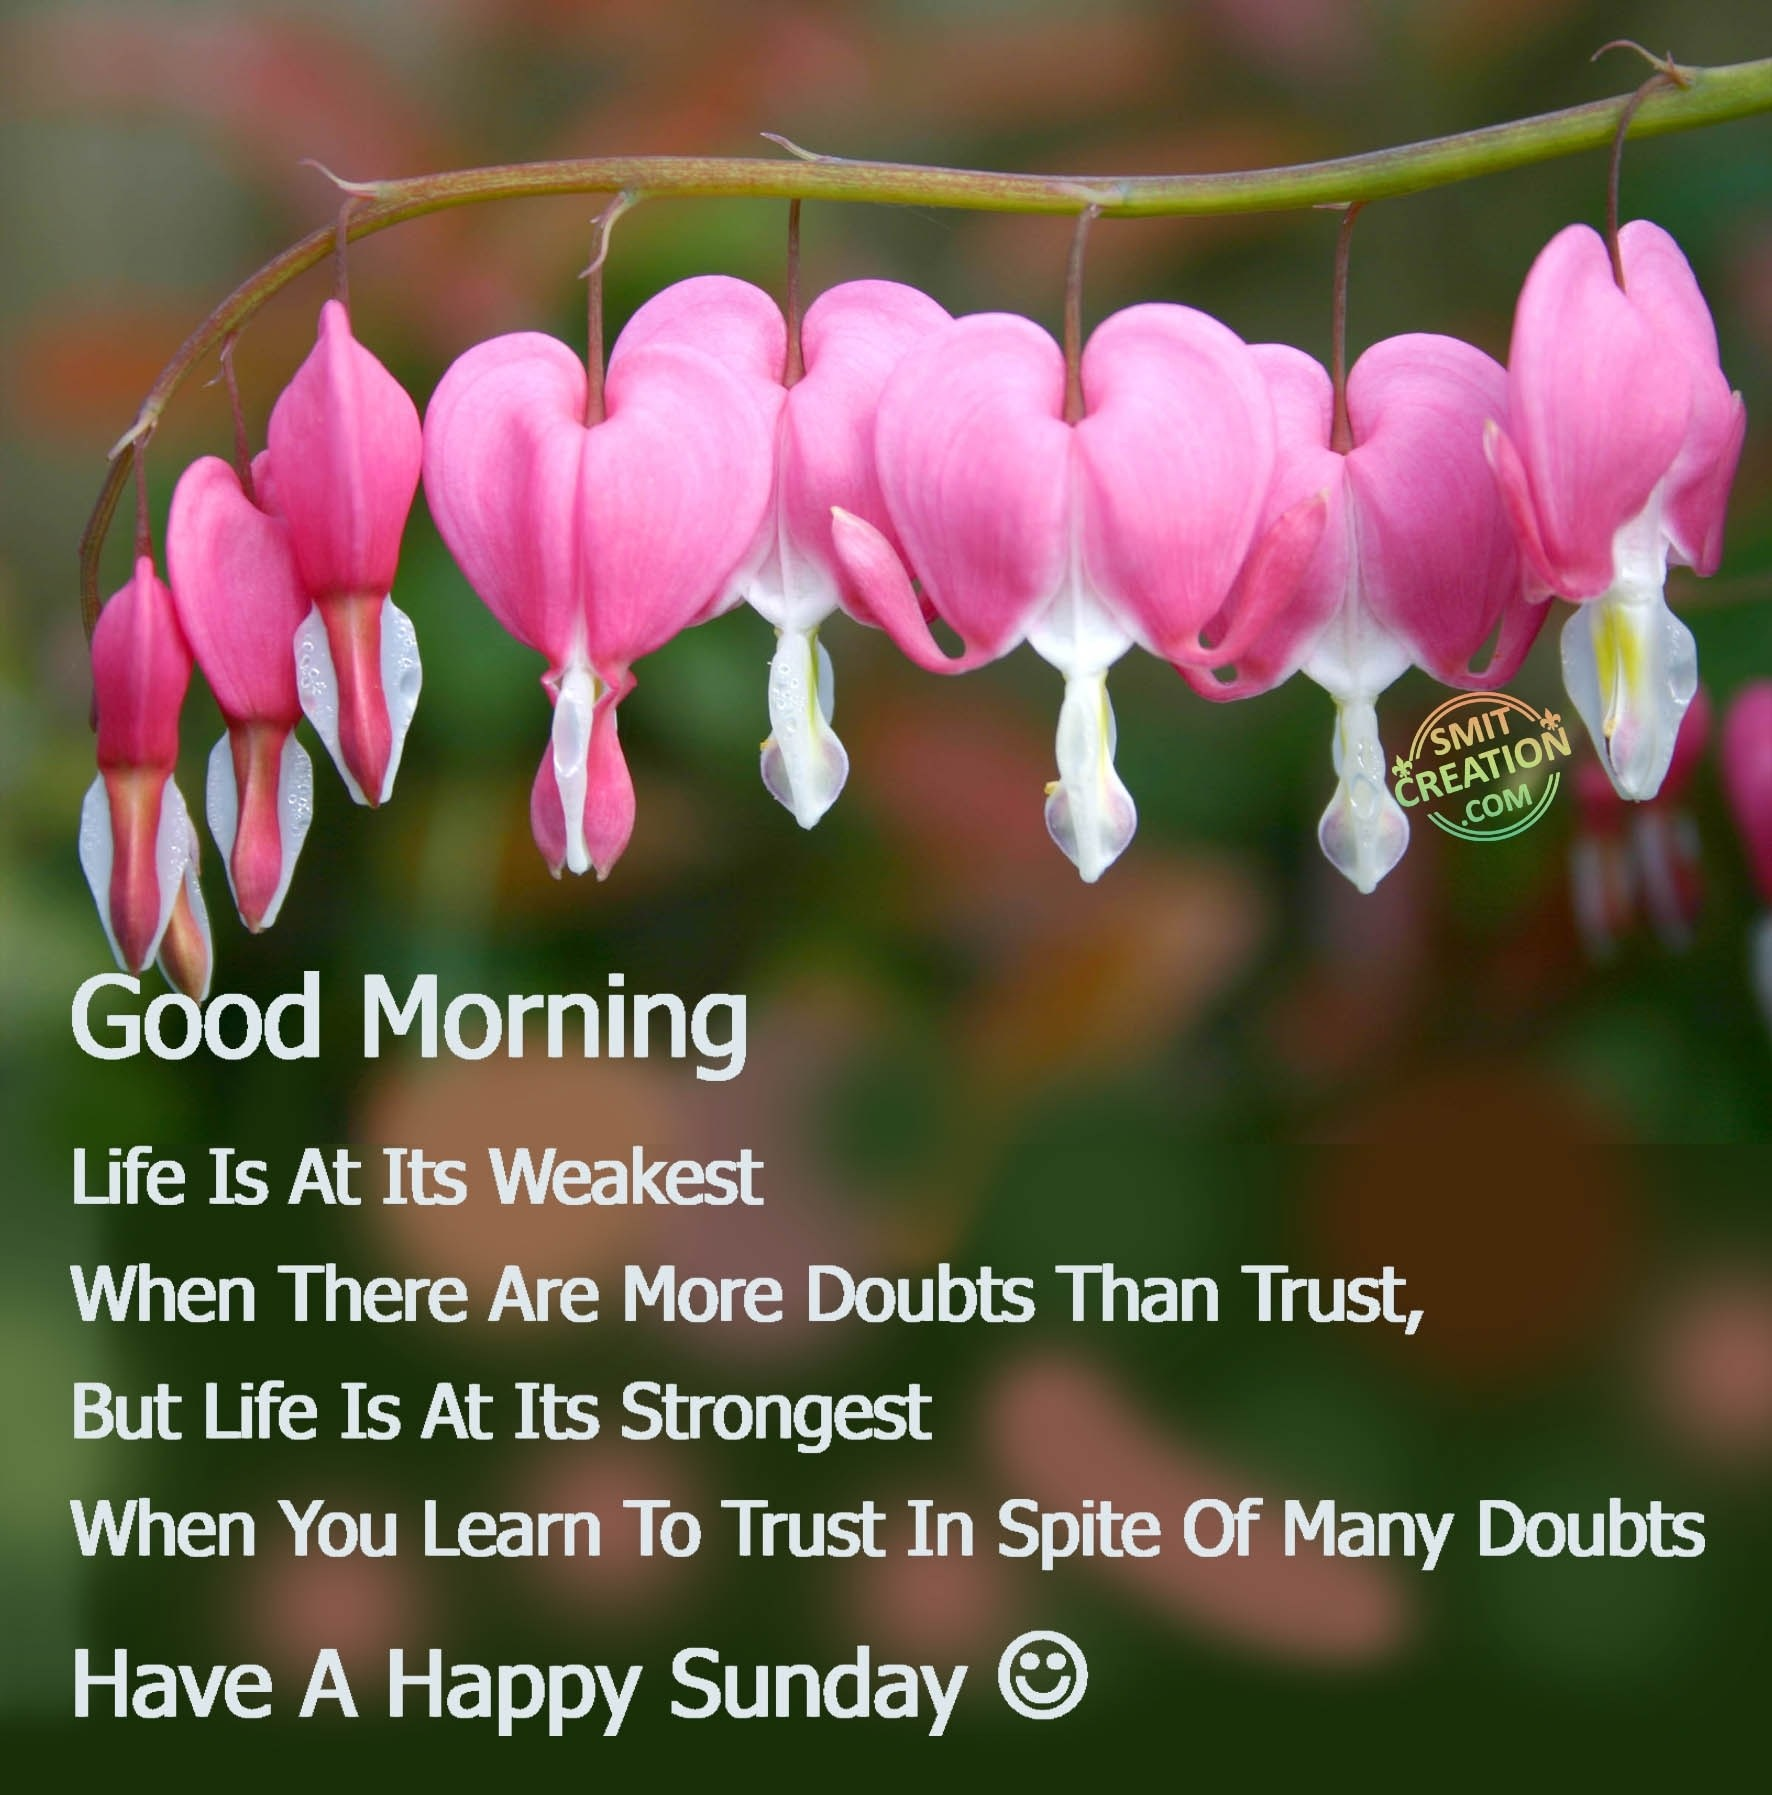 Good Morning And Happy Sunday Text : Sunday pictures and graphics smitcreation page